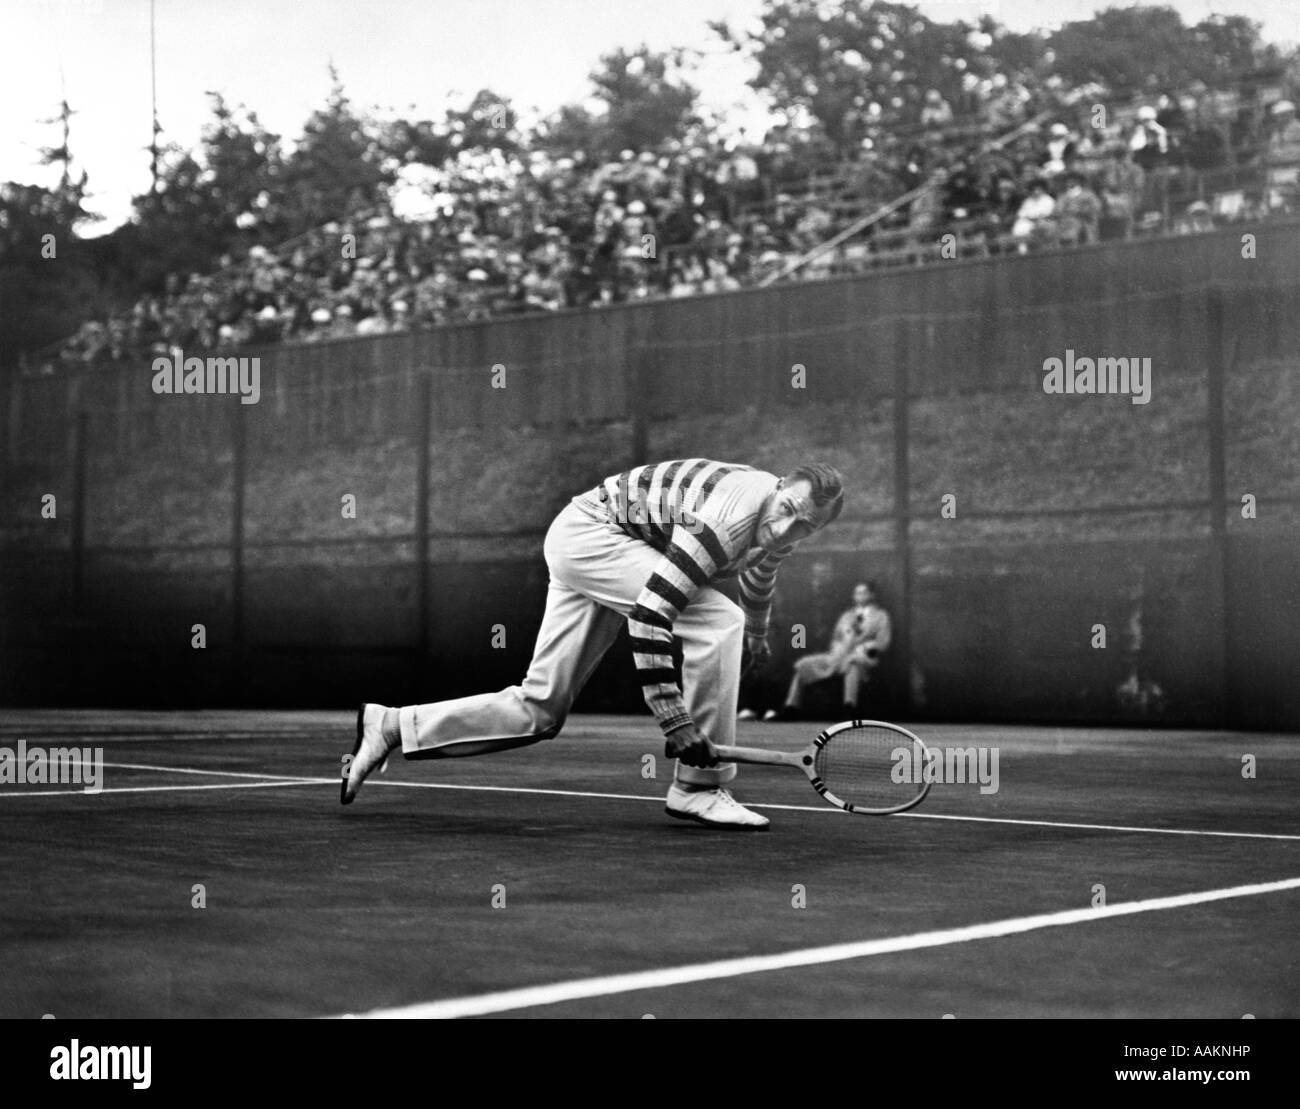 1920s CHAMPION TENNIS PLAYER BILL TILDEN IN ACTION ON THE COURT